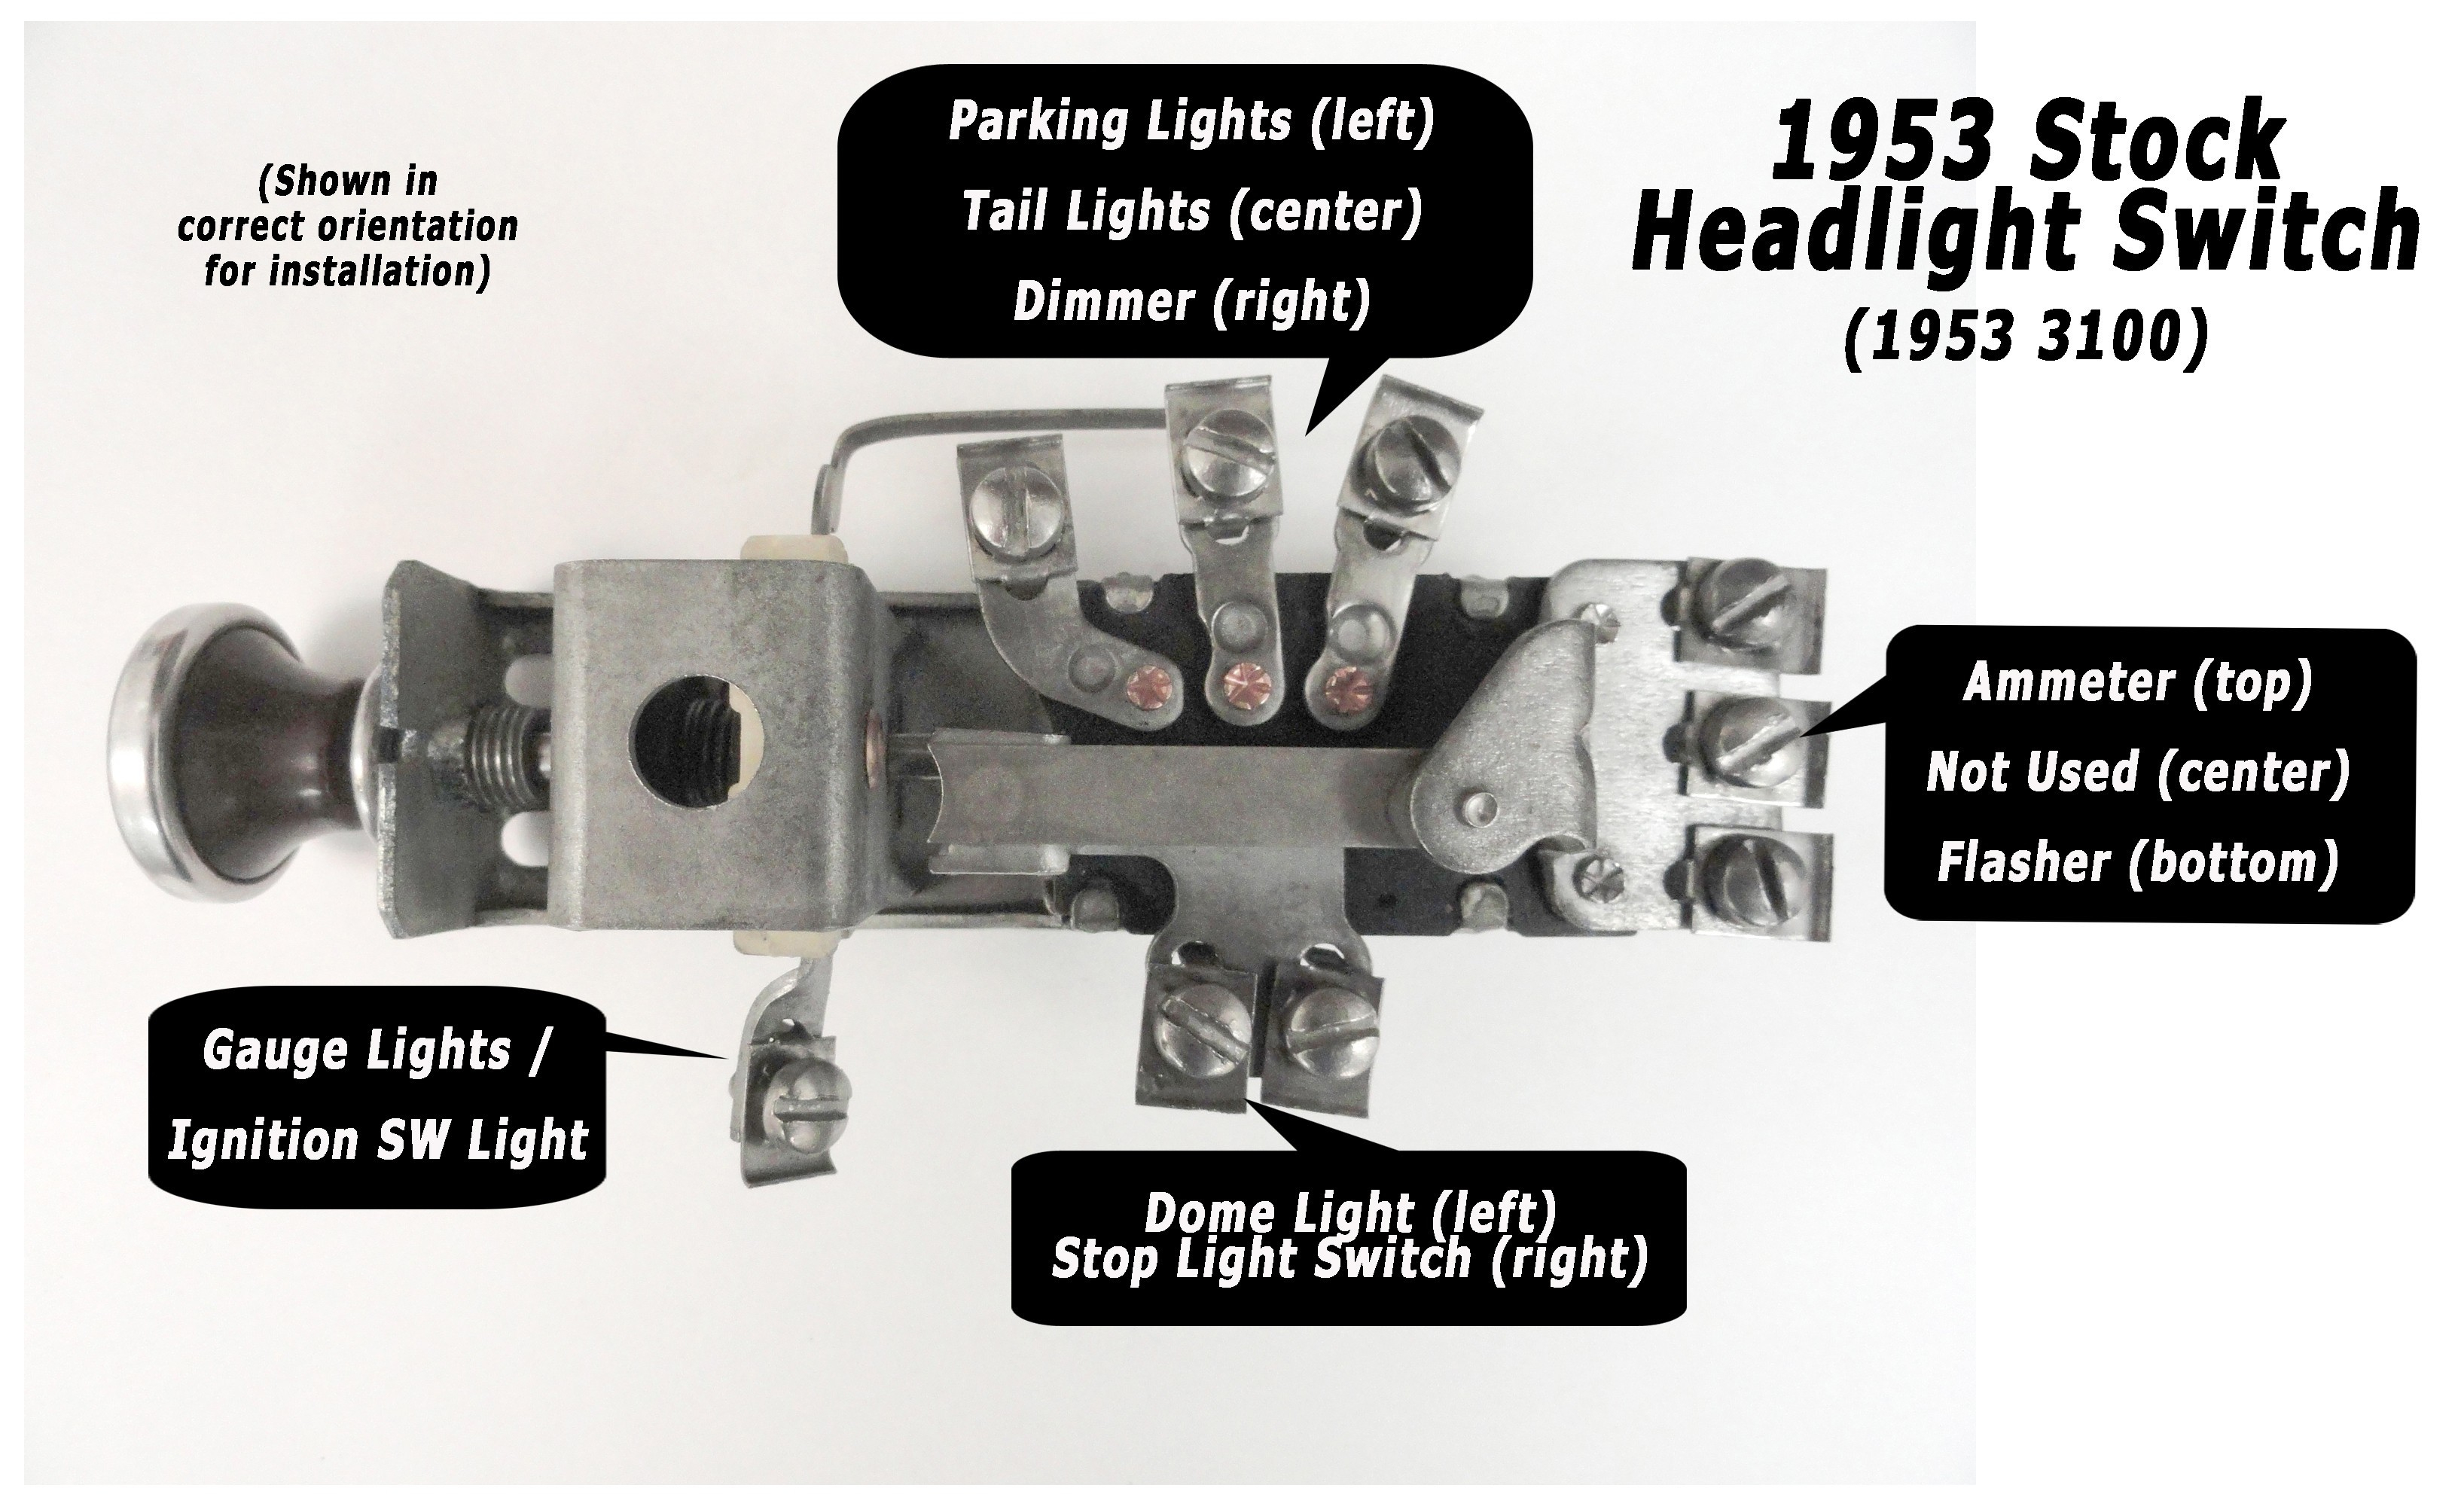 Headlight Switch Wiring Diagram Chevy Tr | Philteg.in - Headlight Switch Wiring Diagram Chevy Truck